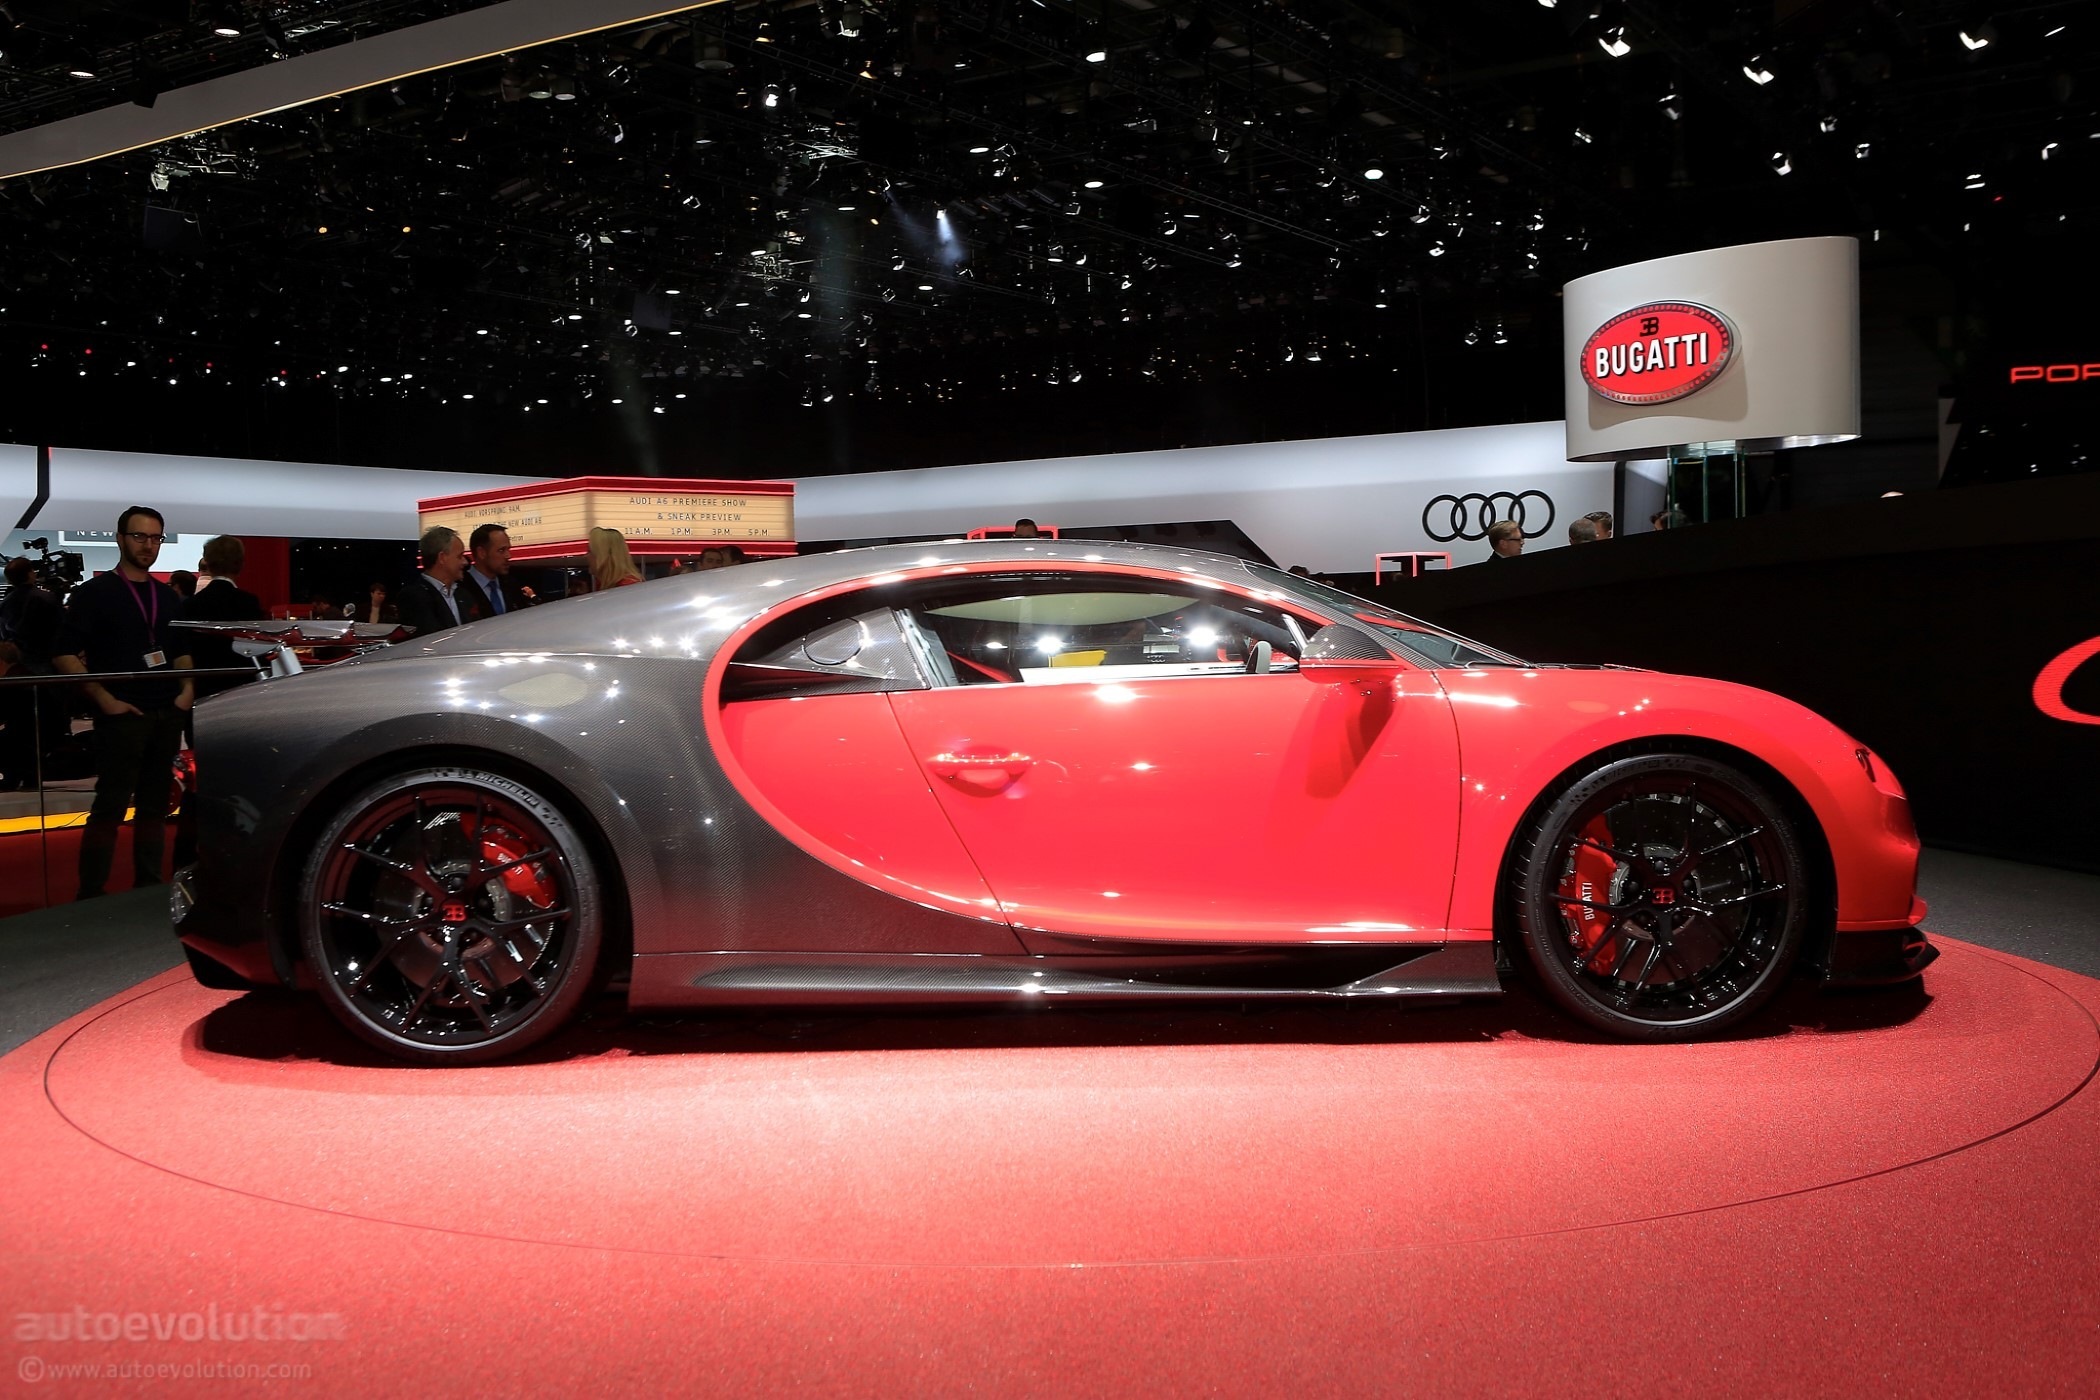 2019 Bugatti Chiron Sport Arrives In Geneva Sporting 500 ...